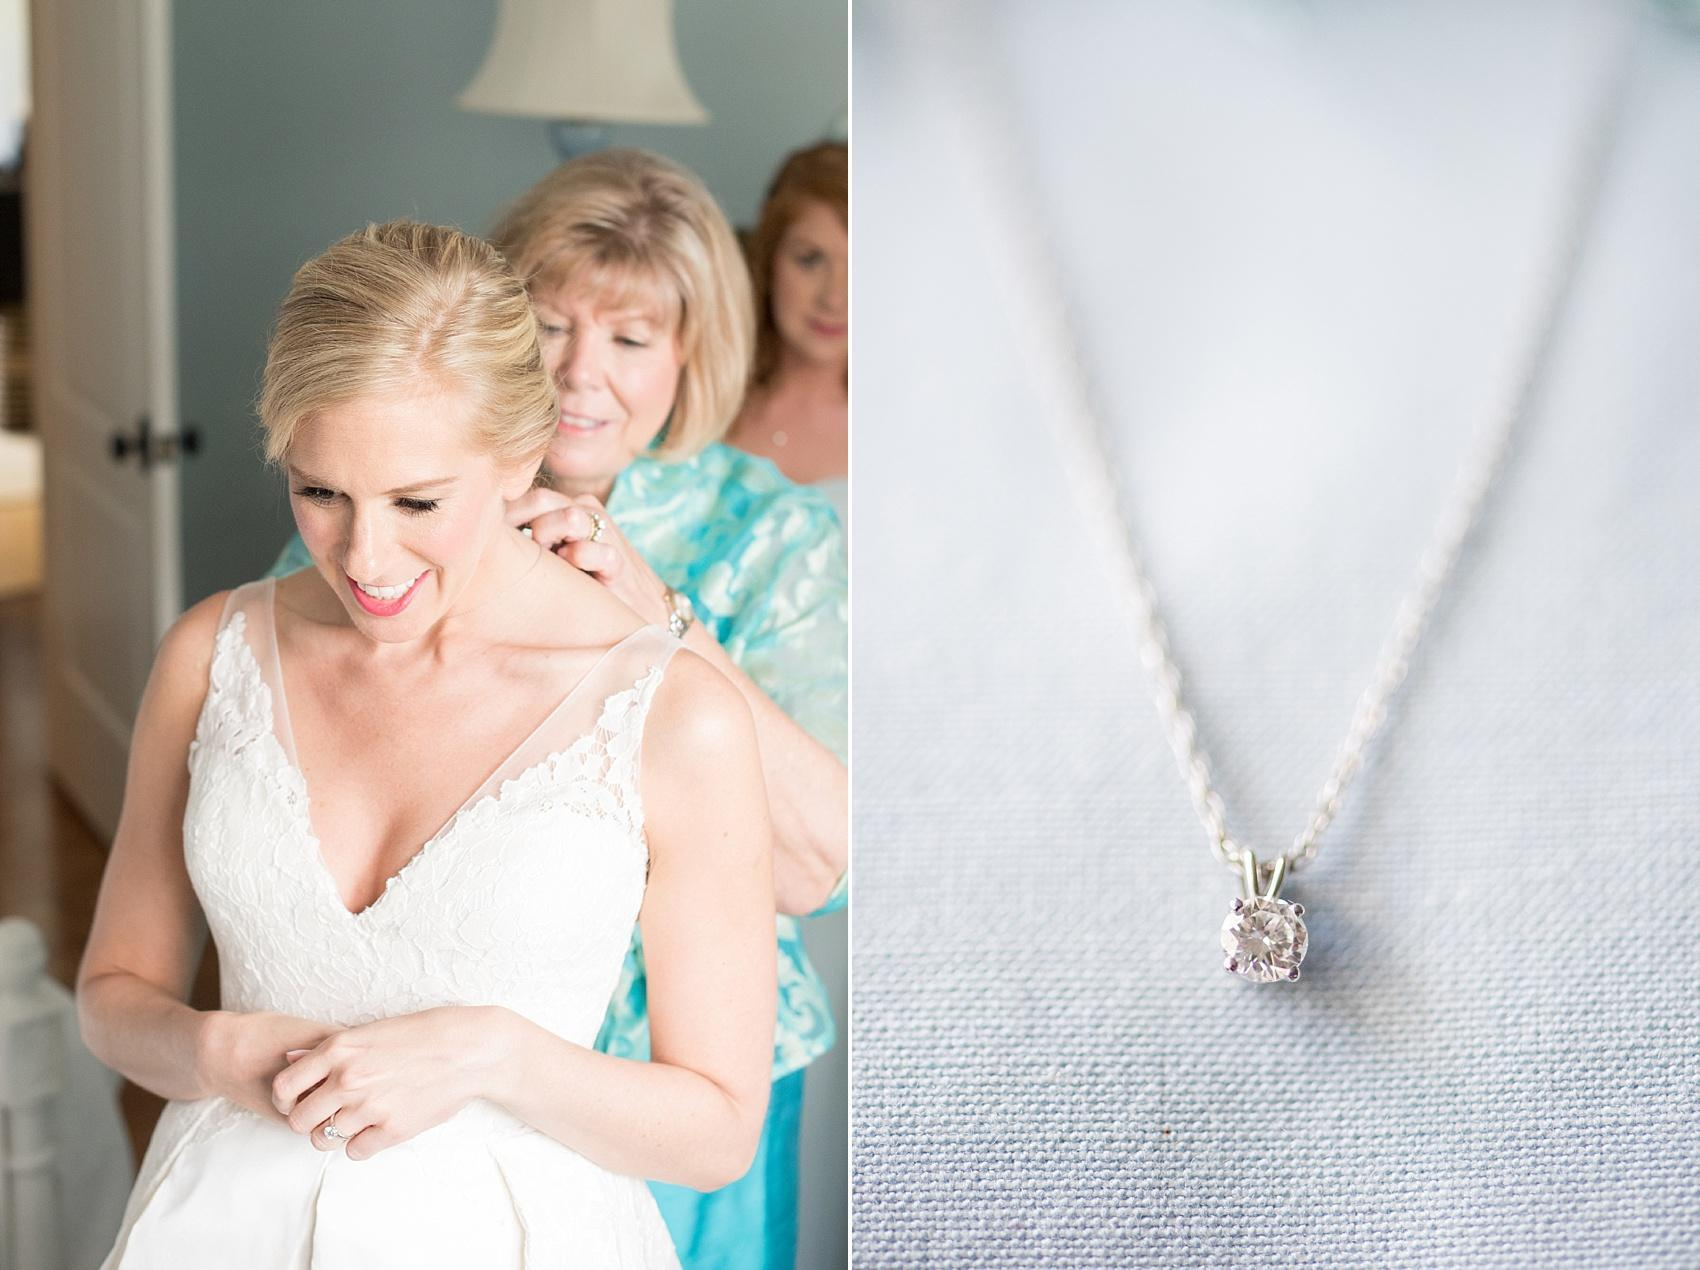 Mikkel Paige Photography photos of a diamond necklace that was the bride's grandmother's stone and her mother helping her get ready for a Market Hall reception in Raleigh.